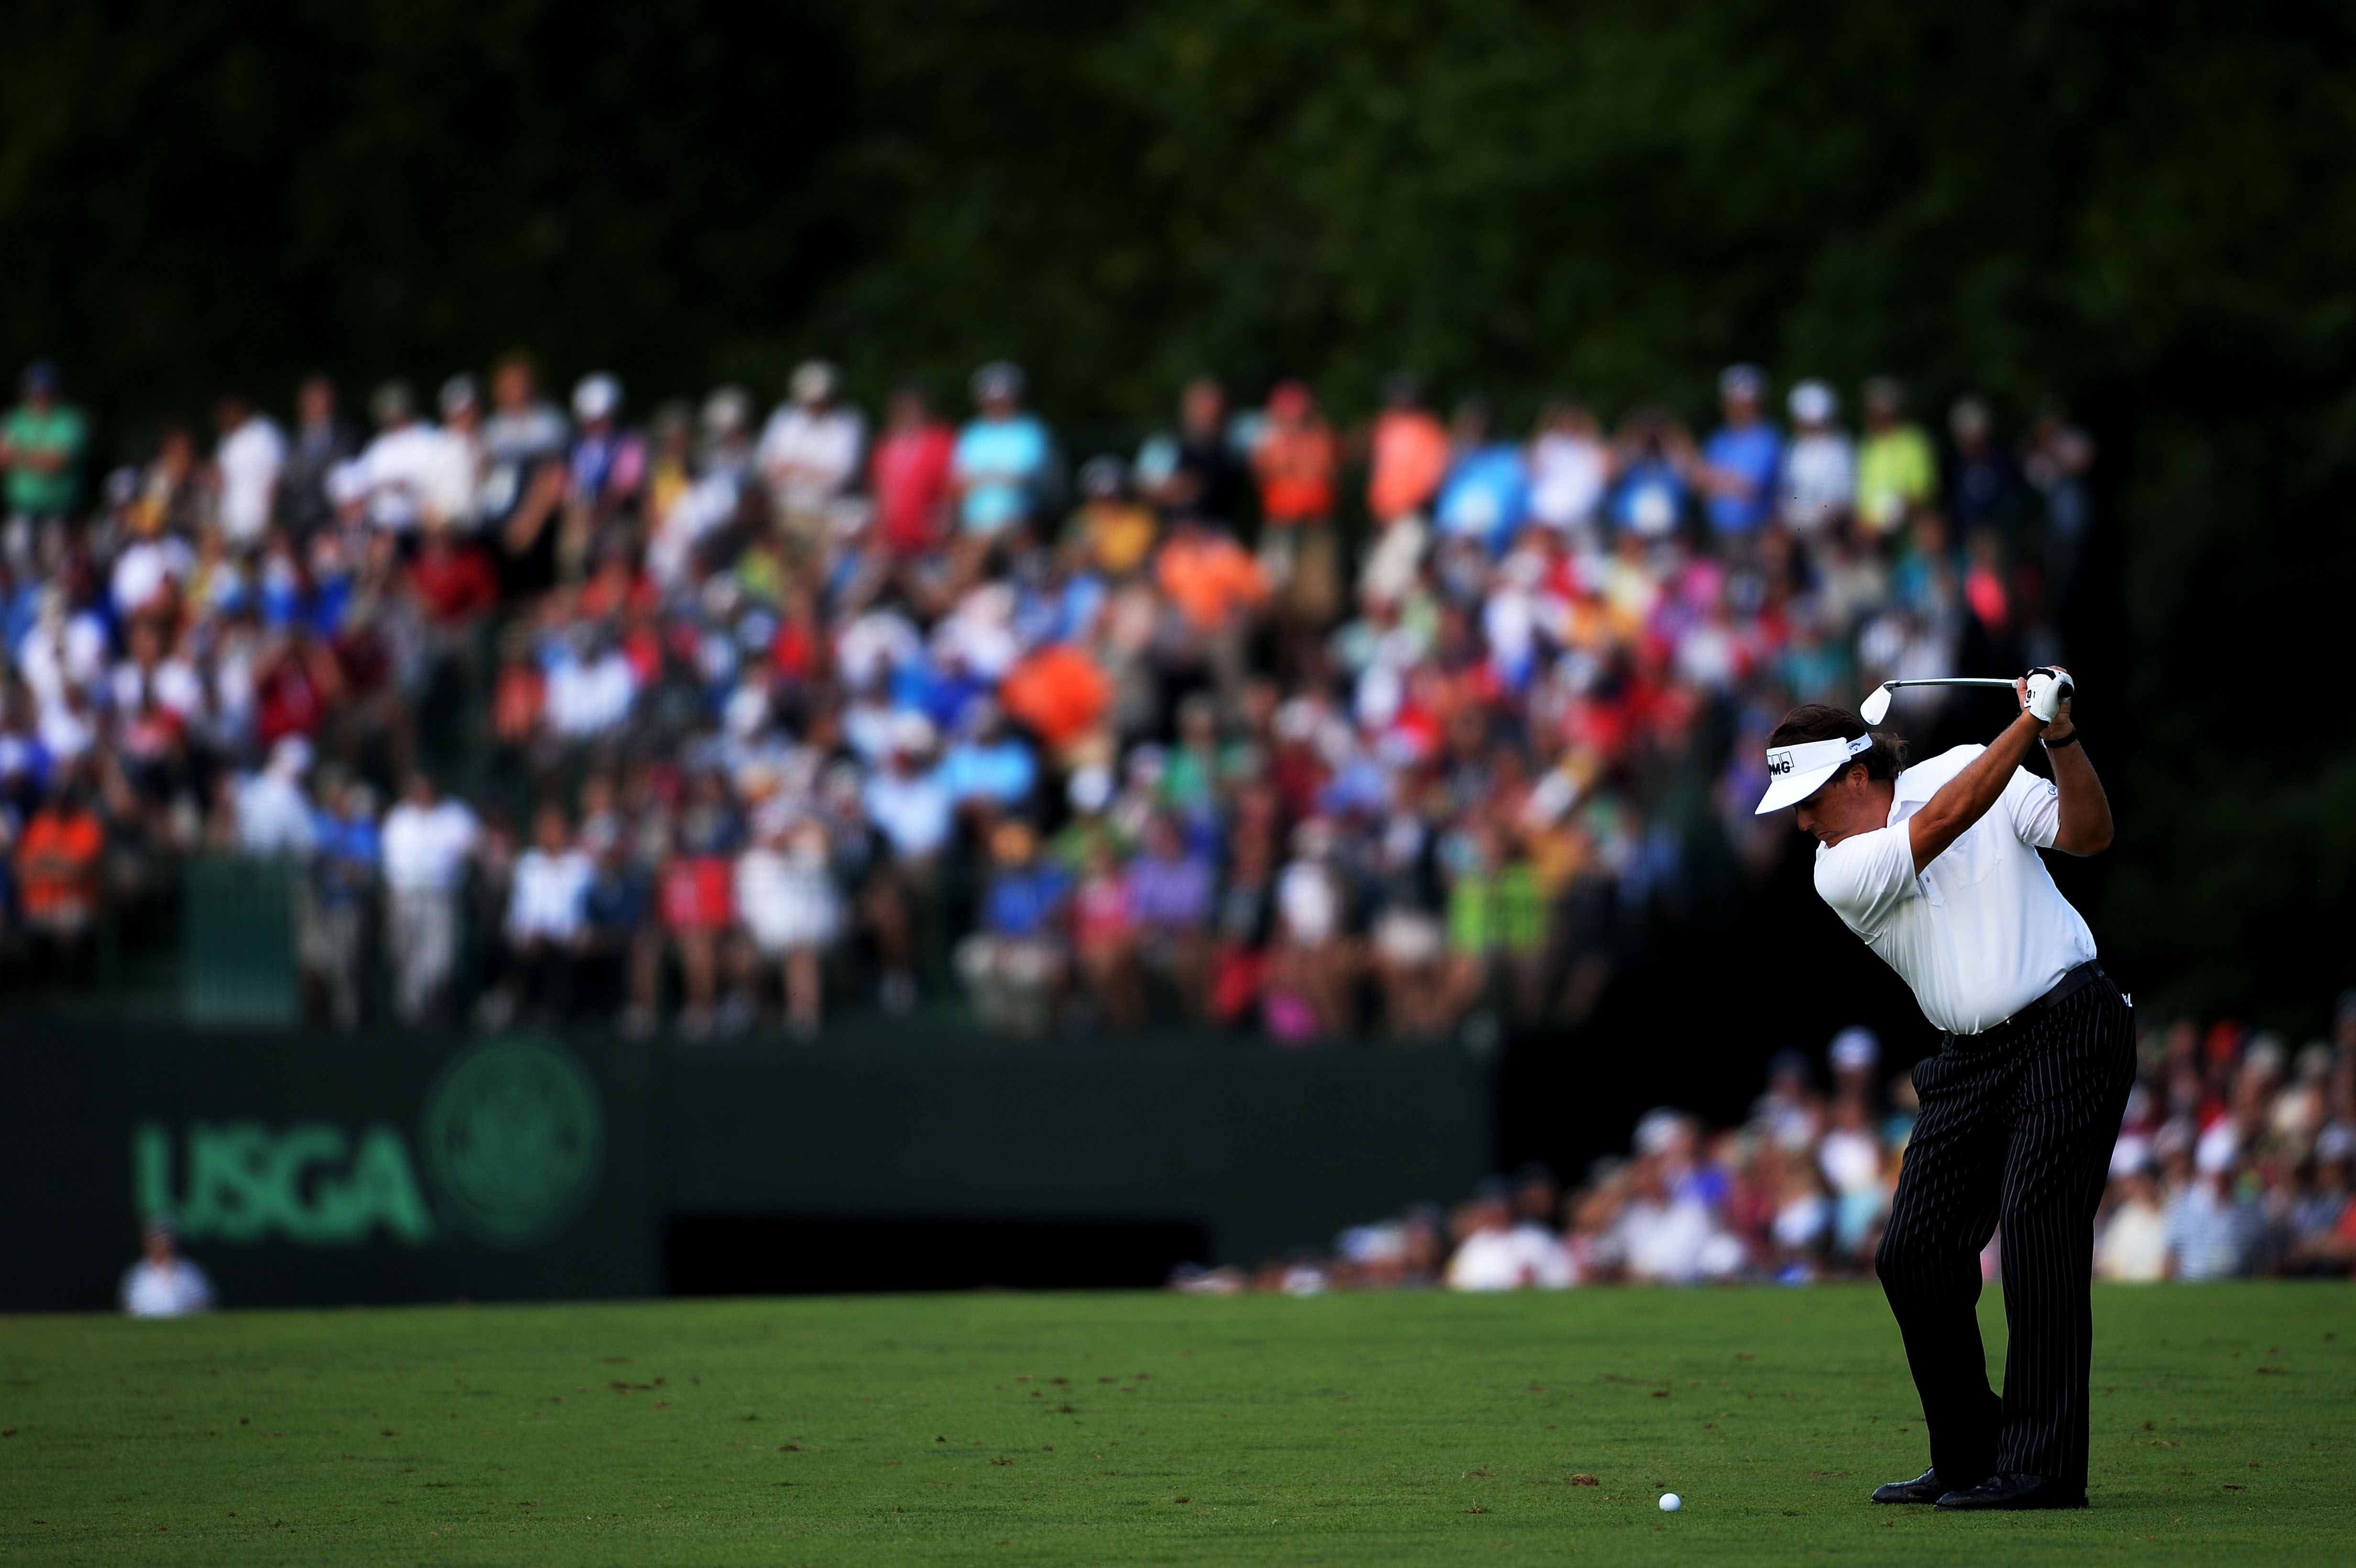 ARDMORE, PA - JUNE 14: Phil Mickelson of the United States hits an approach shot on the eighth hole during Round Two of the 113th U.S. Open at Merion Golf Club on June 14, 2013 in Ardmore, Pennsylvania. Ross Kinnaird/Getty Images Sport